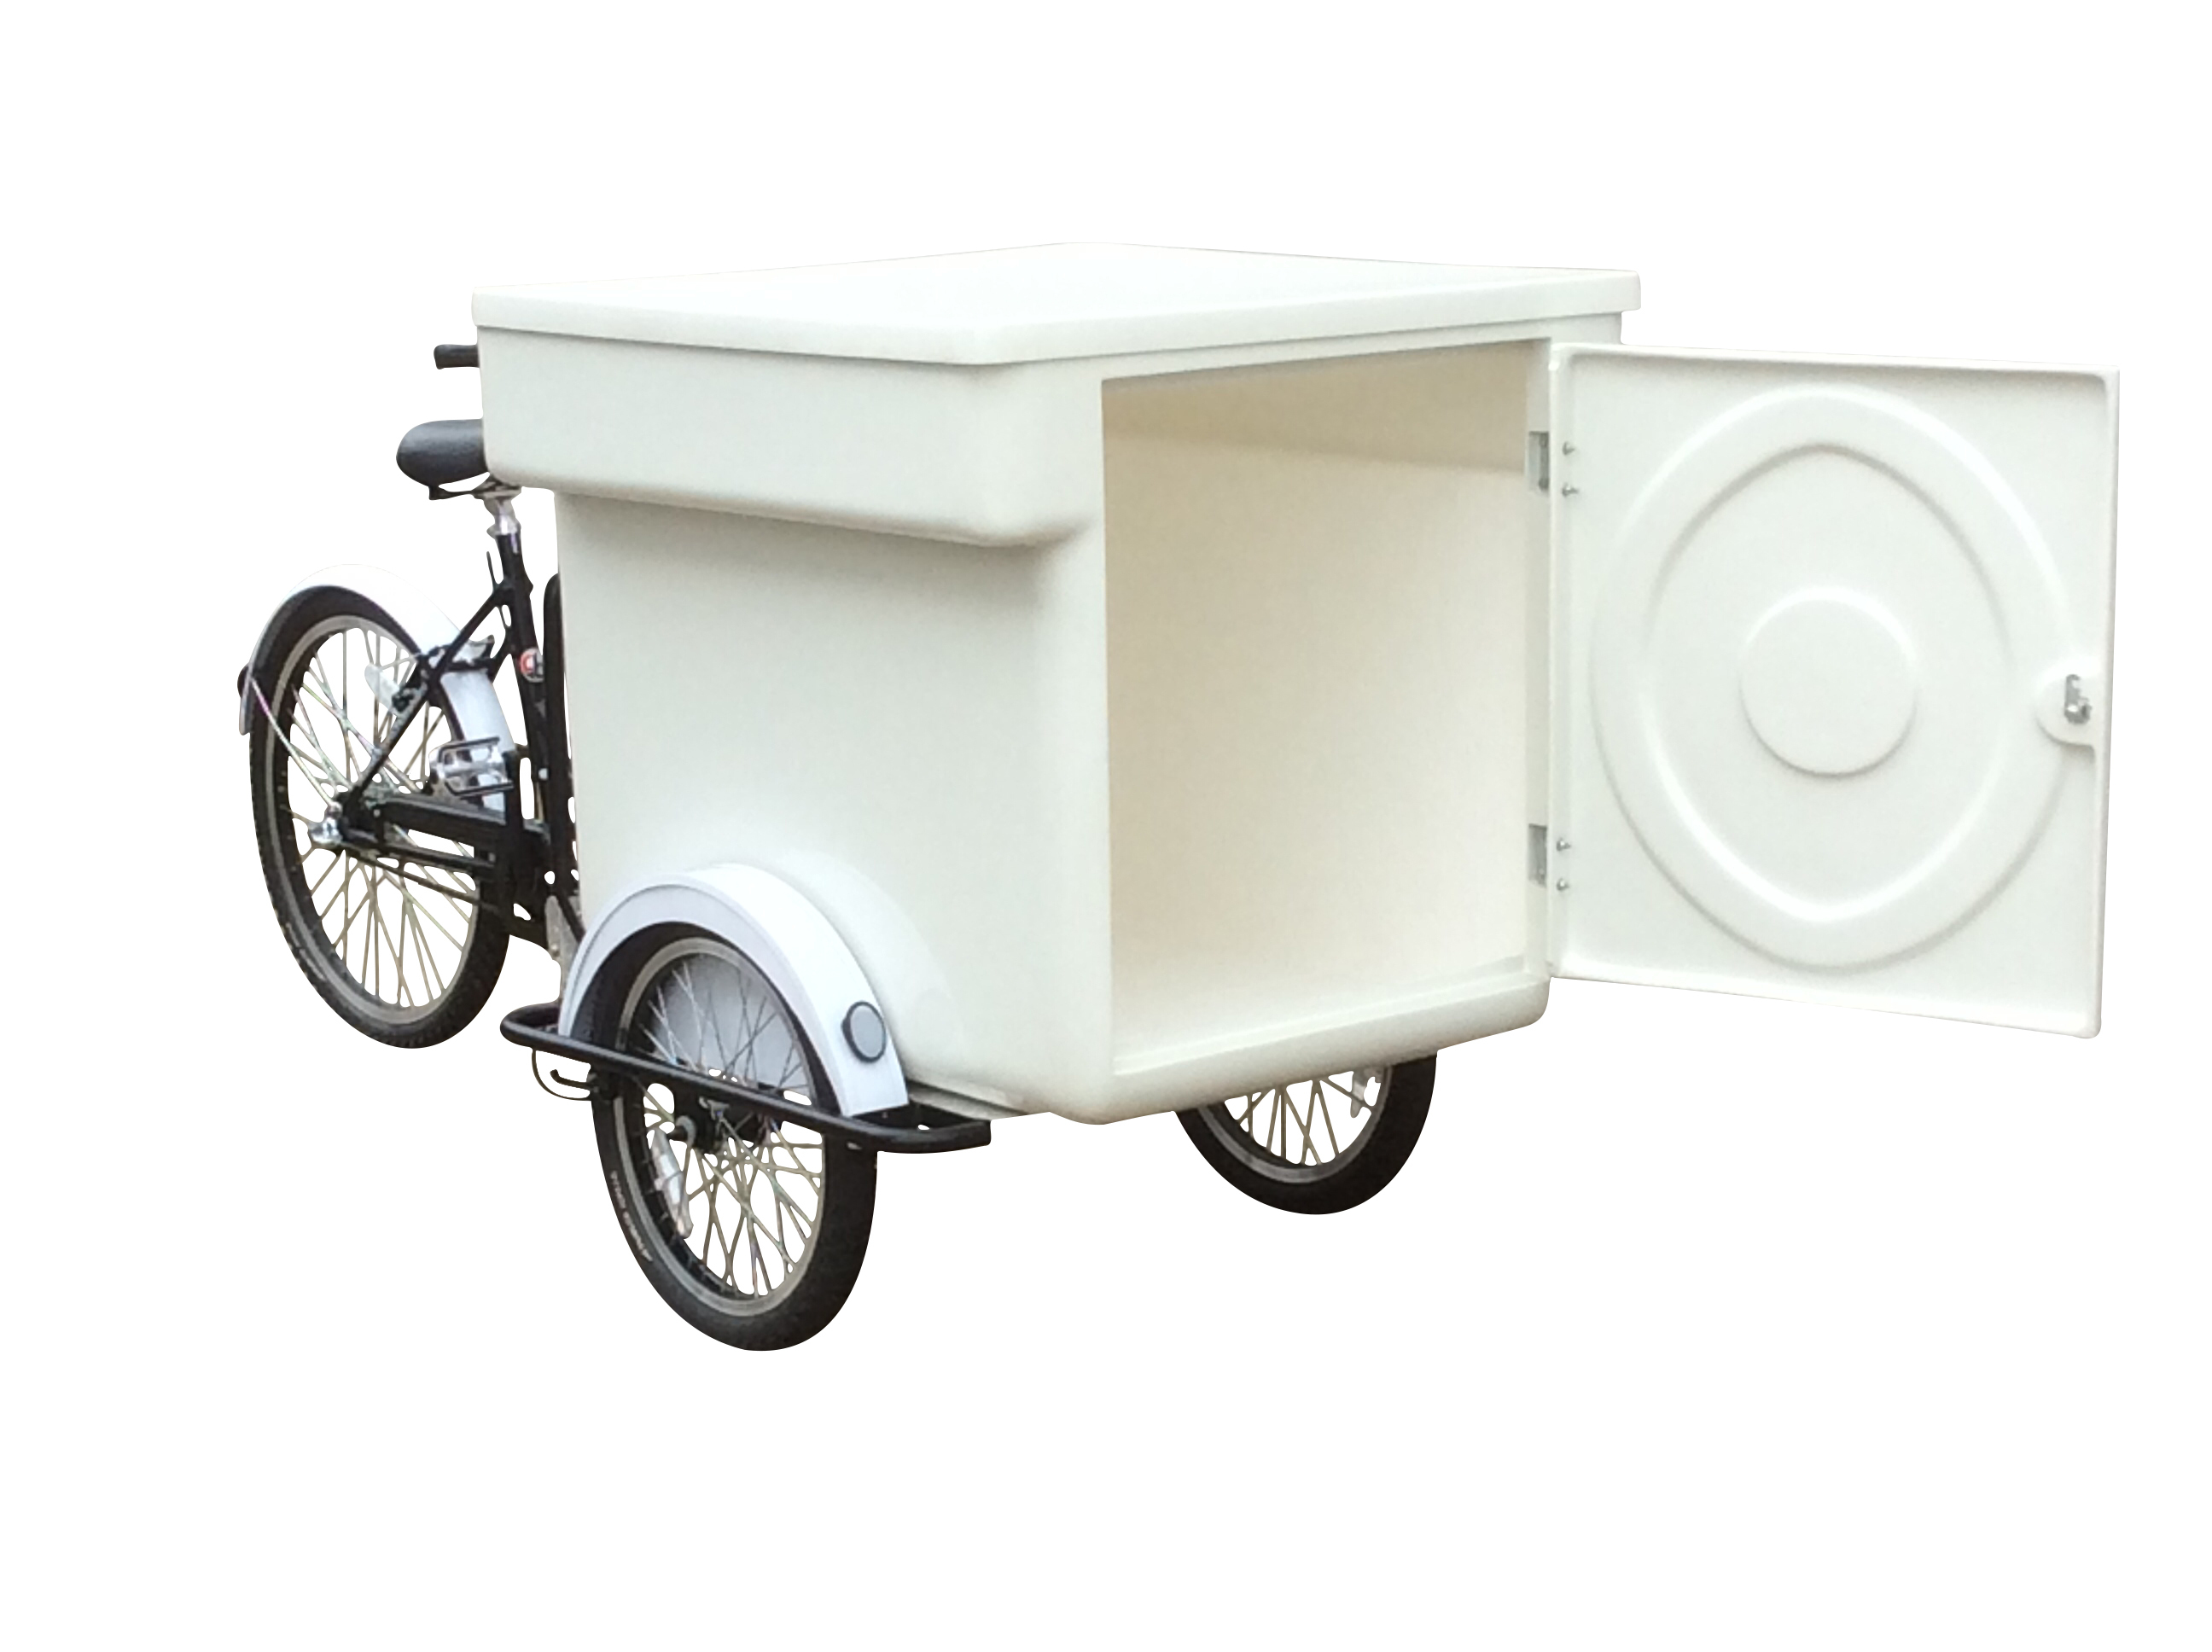 Triciclo_Versa_Catering_bike_cargo_tricycle_1